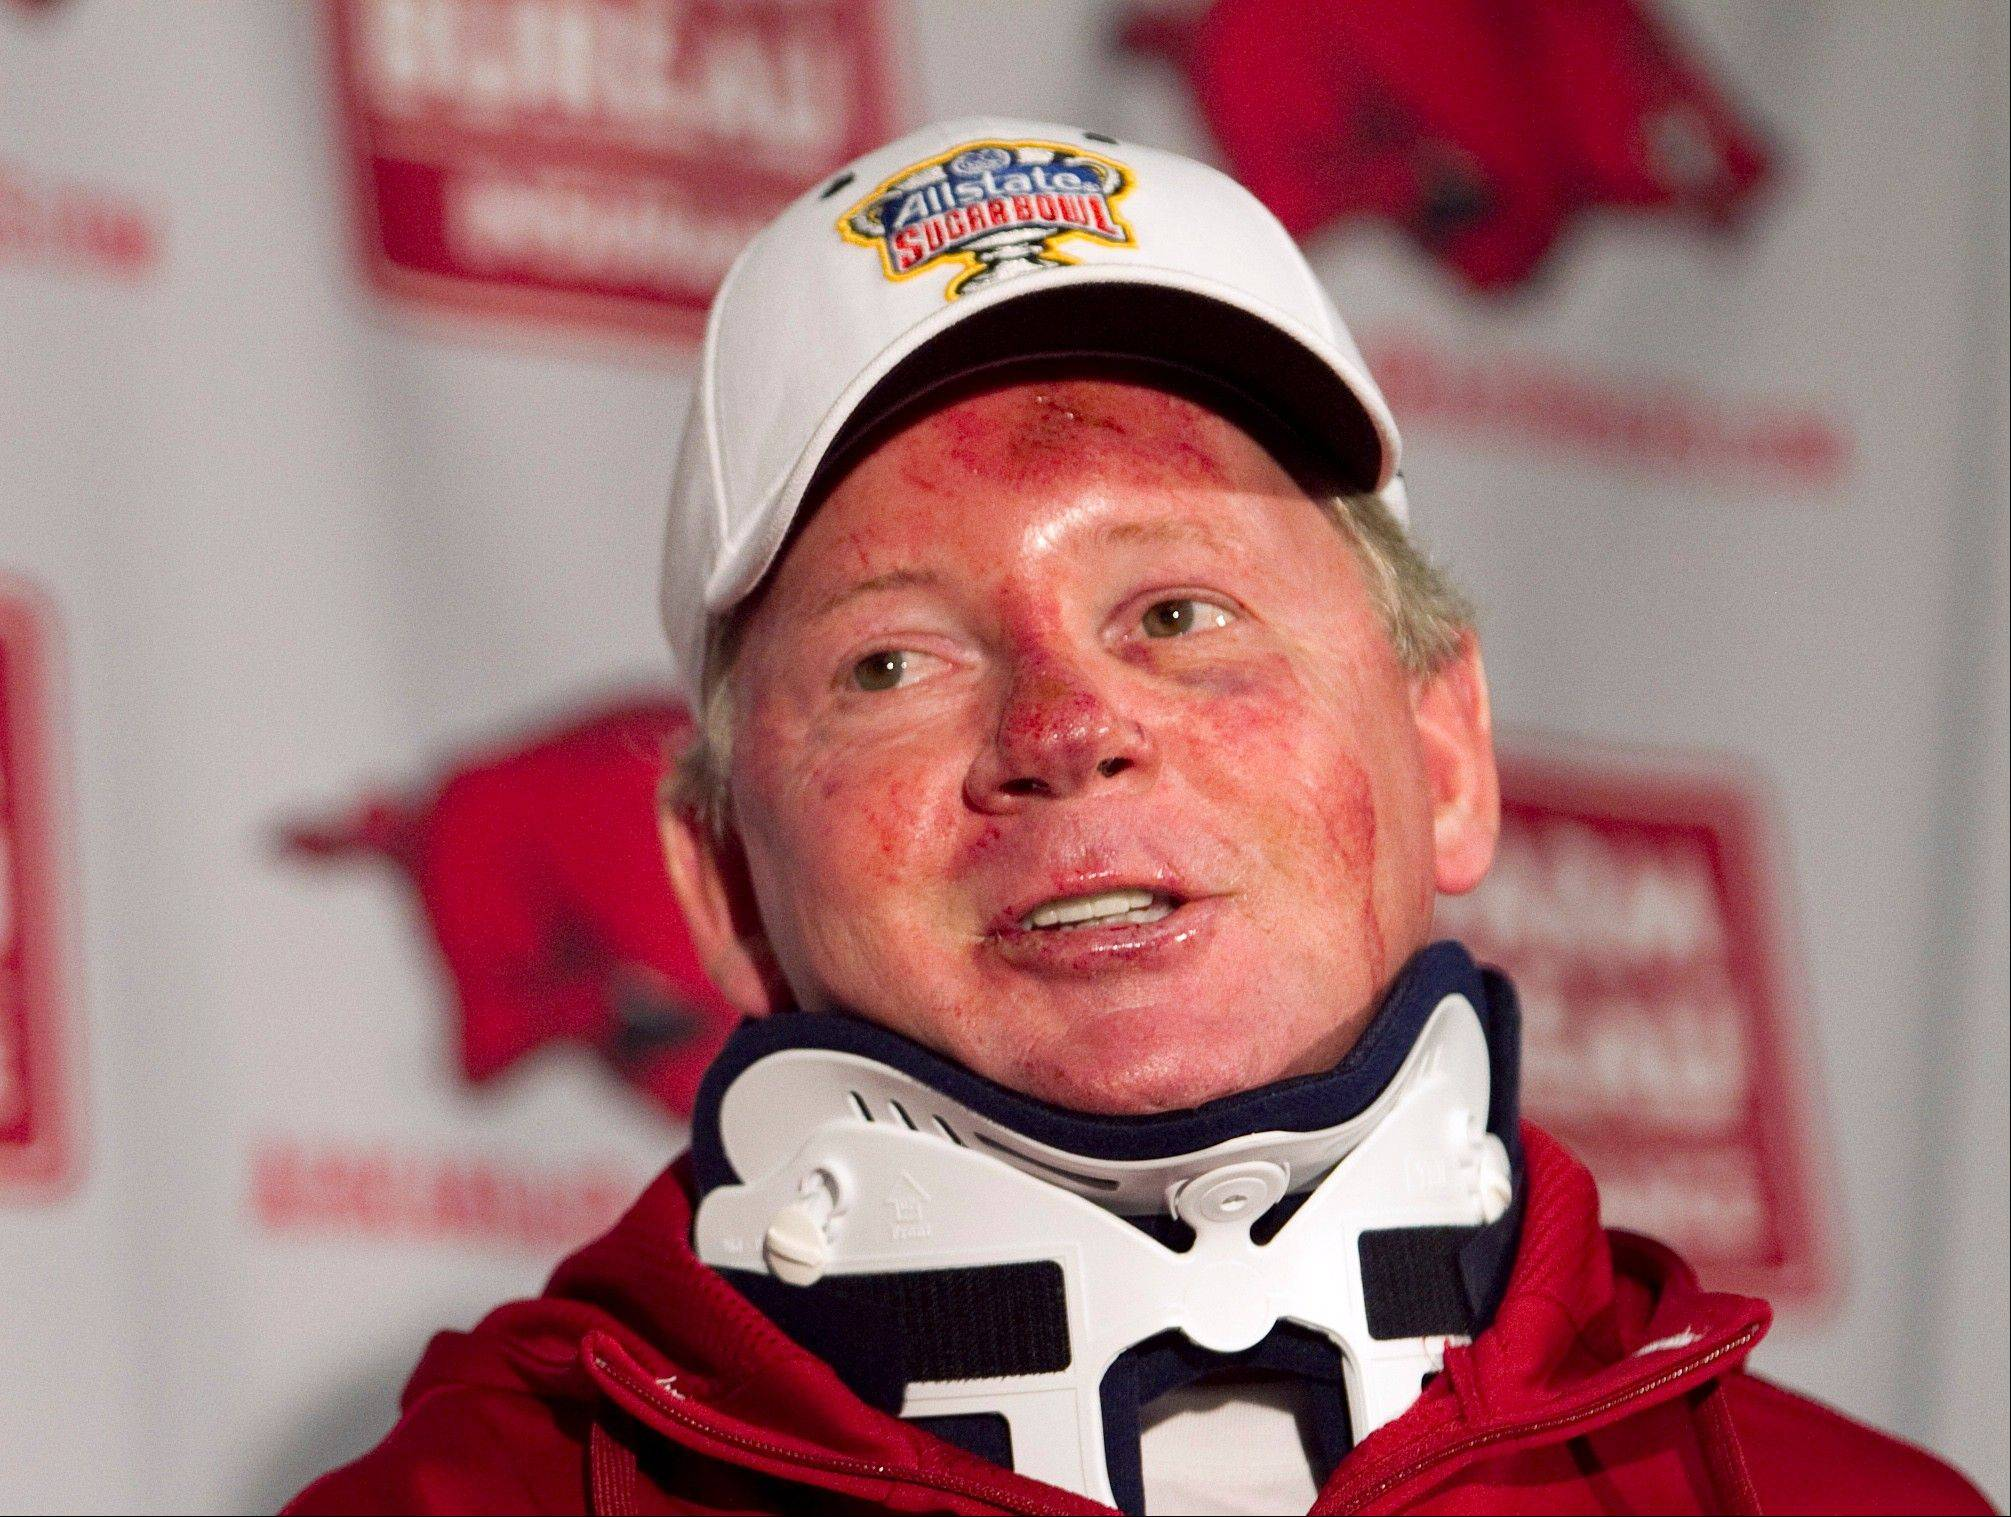 "Bobby Petrino speaks during a news conference in Fayetteville, Ark., after he was injured in a motorcycle accident. He was dismissed as Arkansas' head football coach for a ""pattern of misleading behavior"" about the accident, in which he claimed to be alone before revealing that his mistress was a passenger."